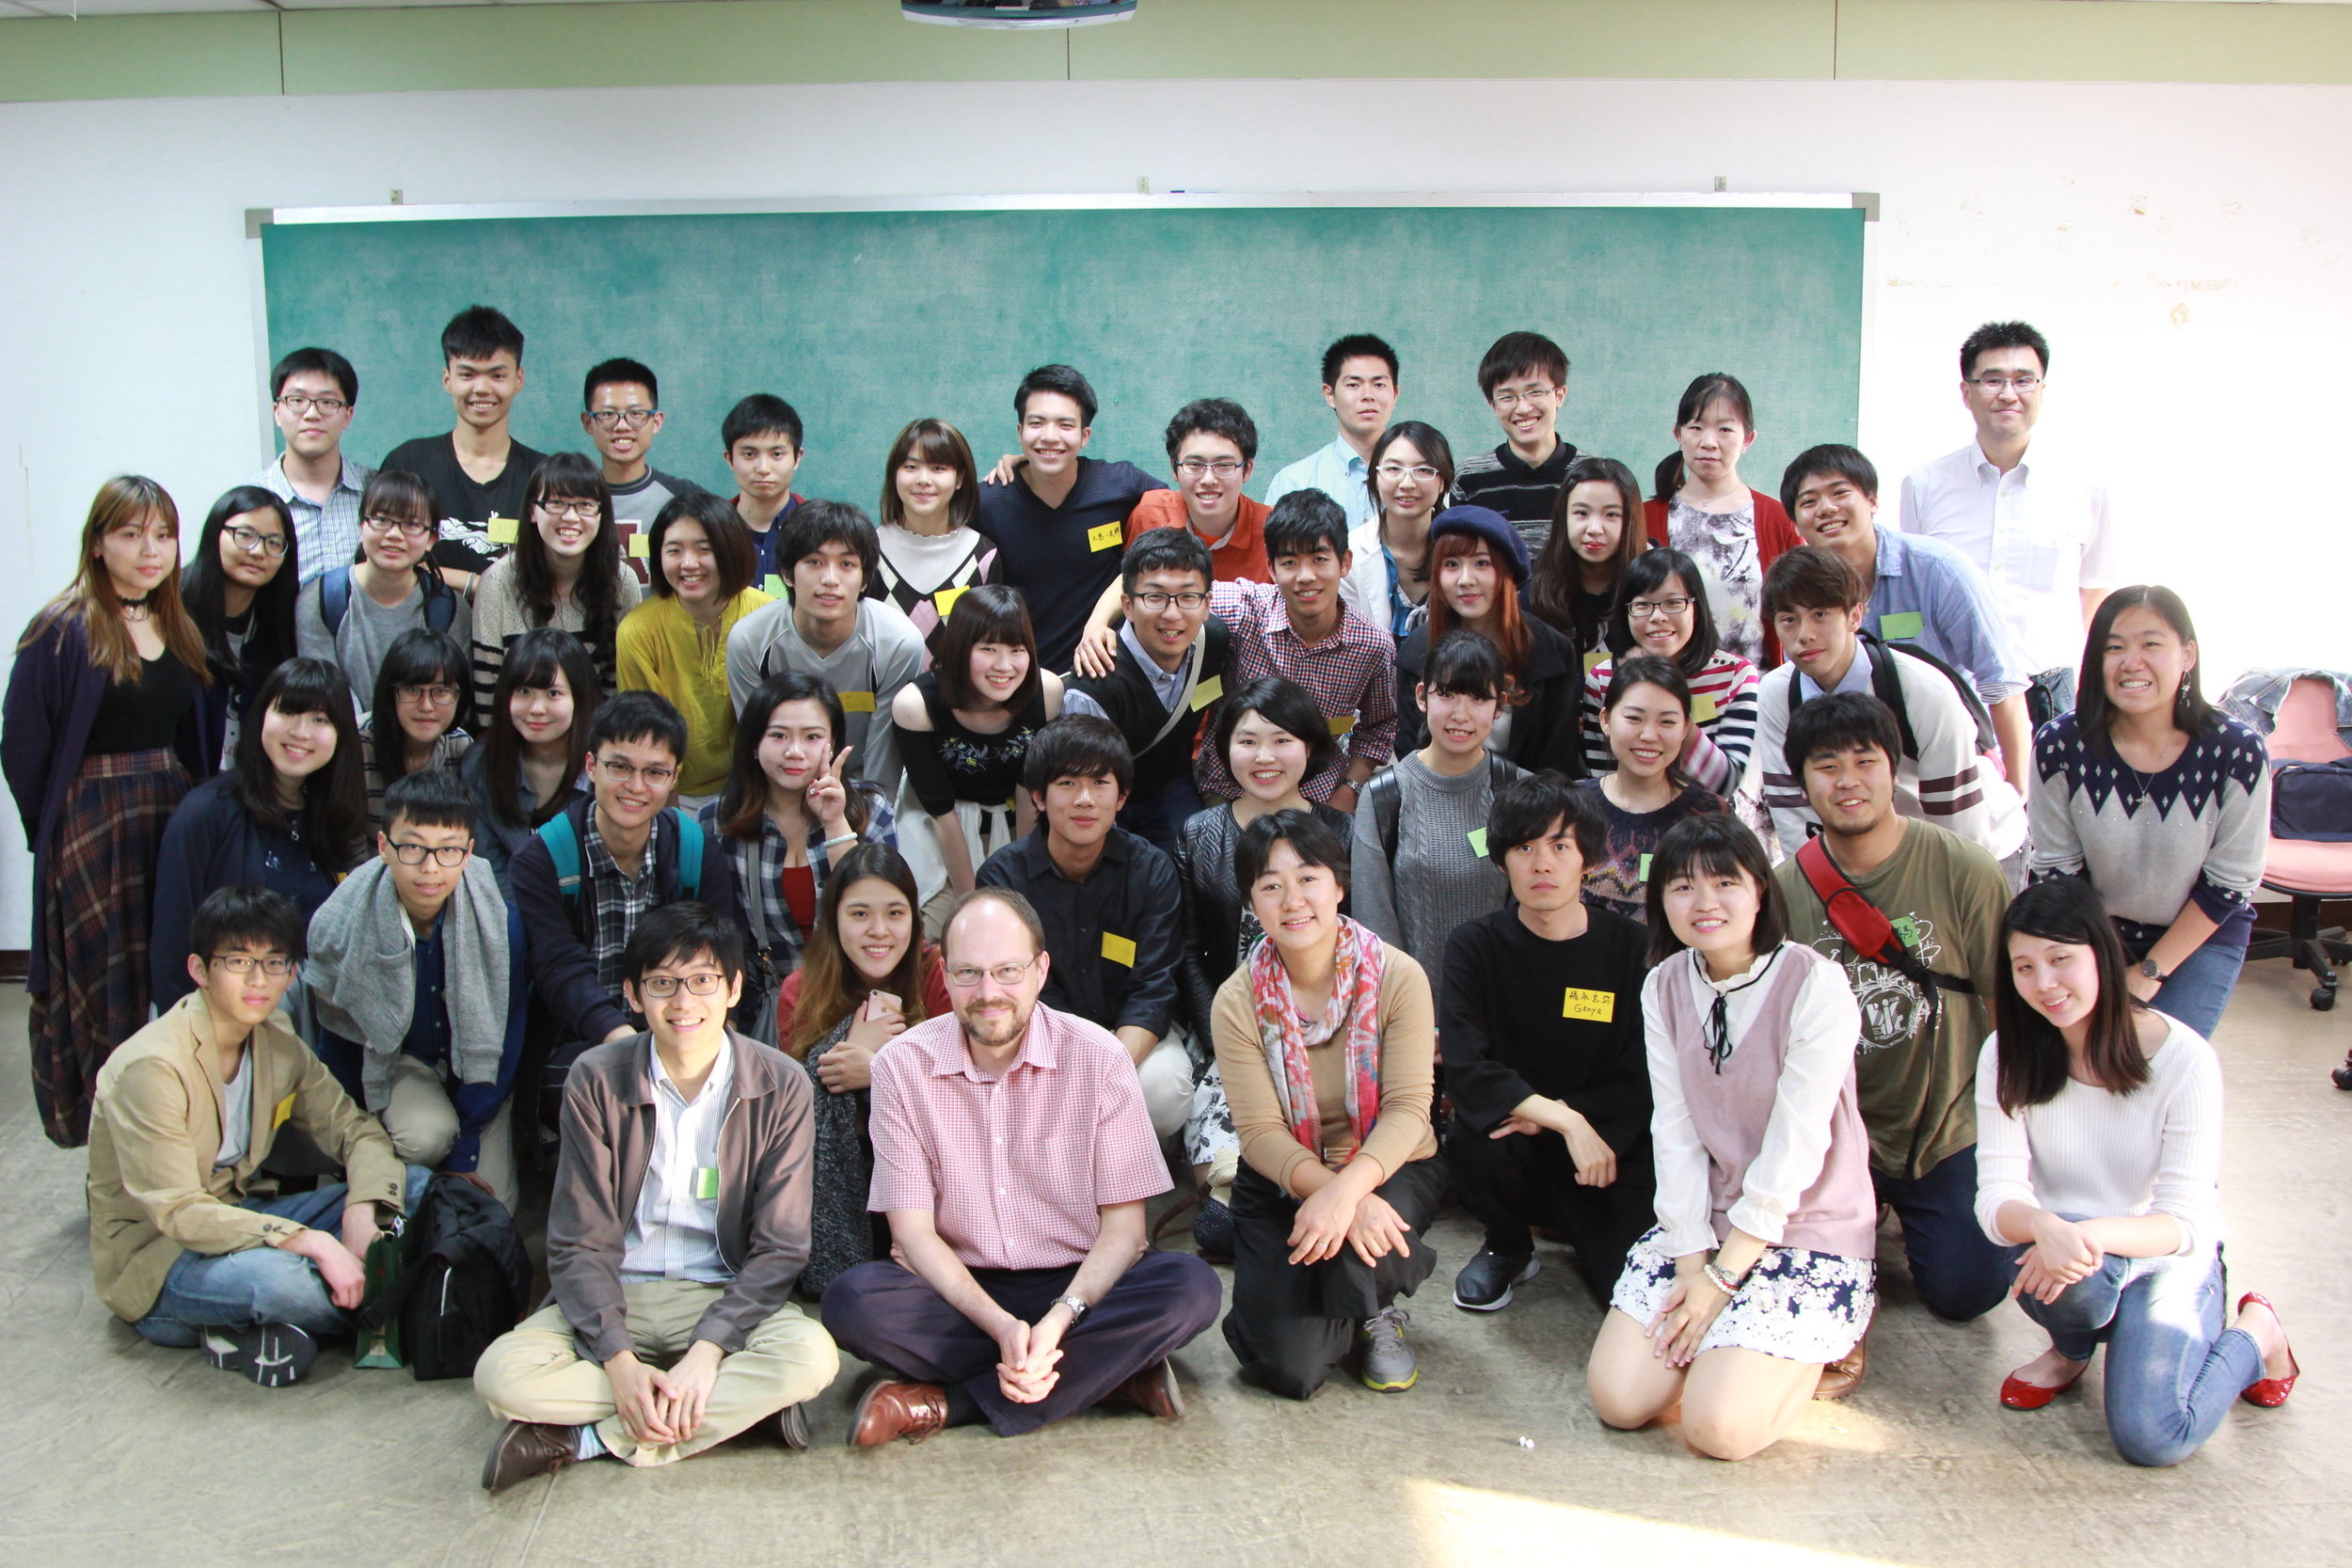 Students from Tokyo and Kyushu Universities with their counterparts from National Taiwan and Tamkang Universities at NTU in Taipei, March 17 (Prof.s Ako, Tomita and Vickers and Dr. Maehara in attendance). (Photo: Mervin Low)